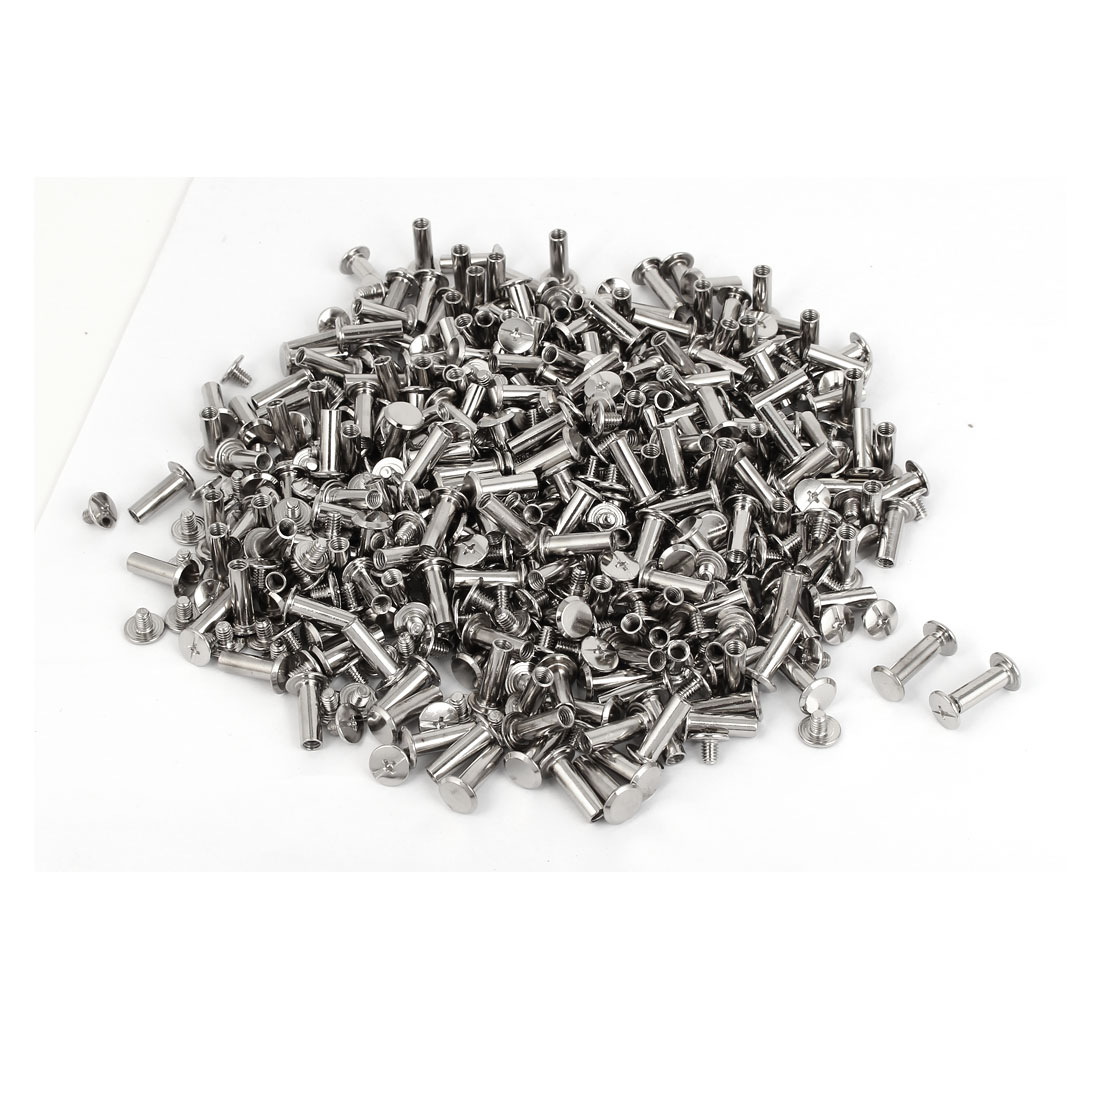 Scrapbooks Photo Albums Metal Binding Chicago Screws Bolts M5 x 15mm 500 Pcs